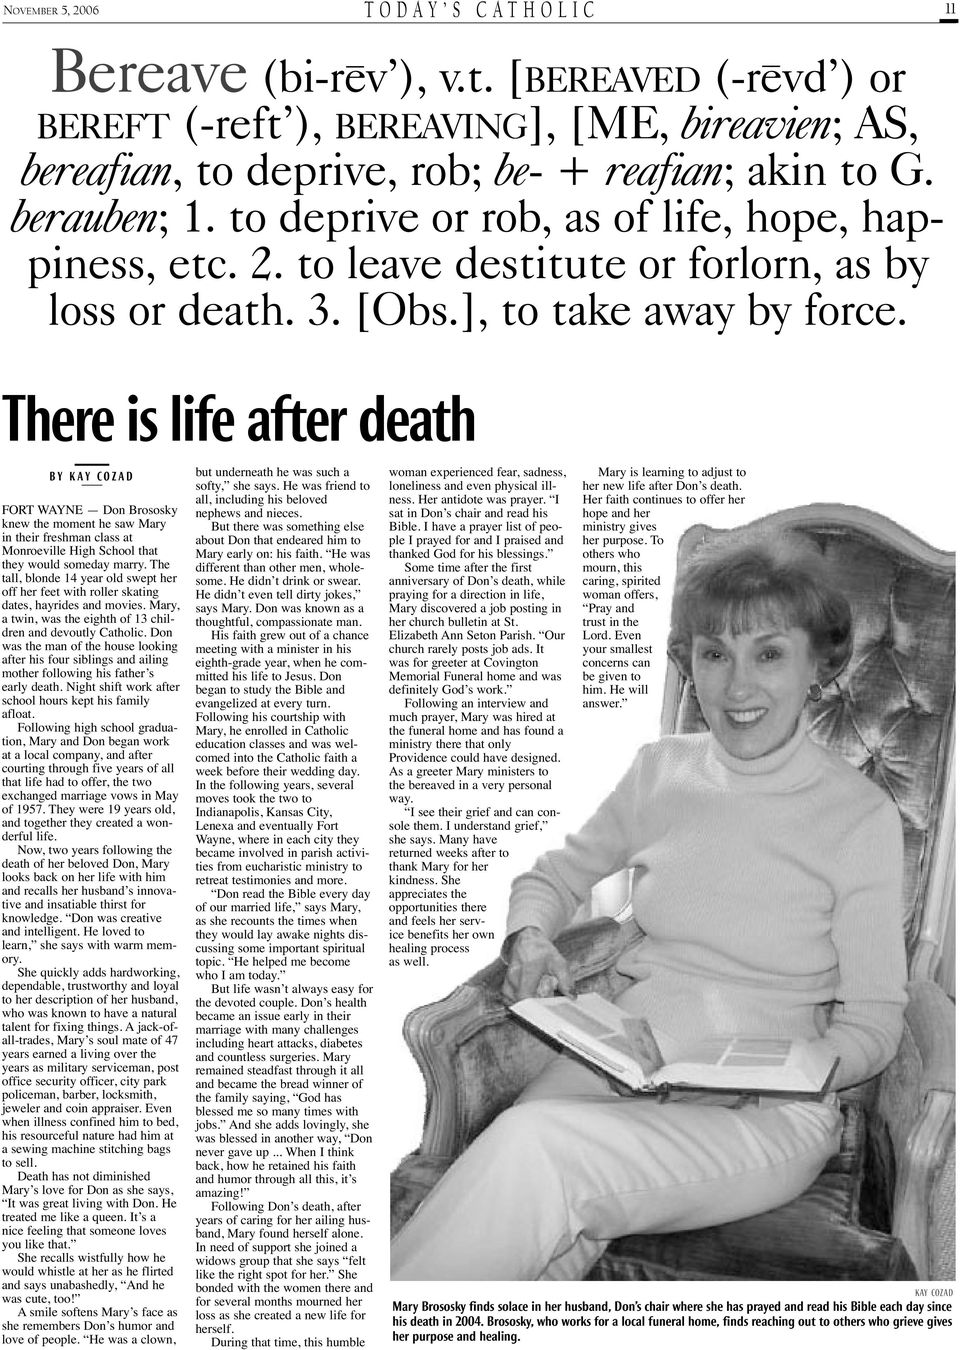 There is life after death BY KAY COZAD FORT WAYNE Don Brososky knew the moment he saw Mary in their freshman class at Monroeville High School that they would someday marry.